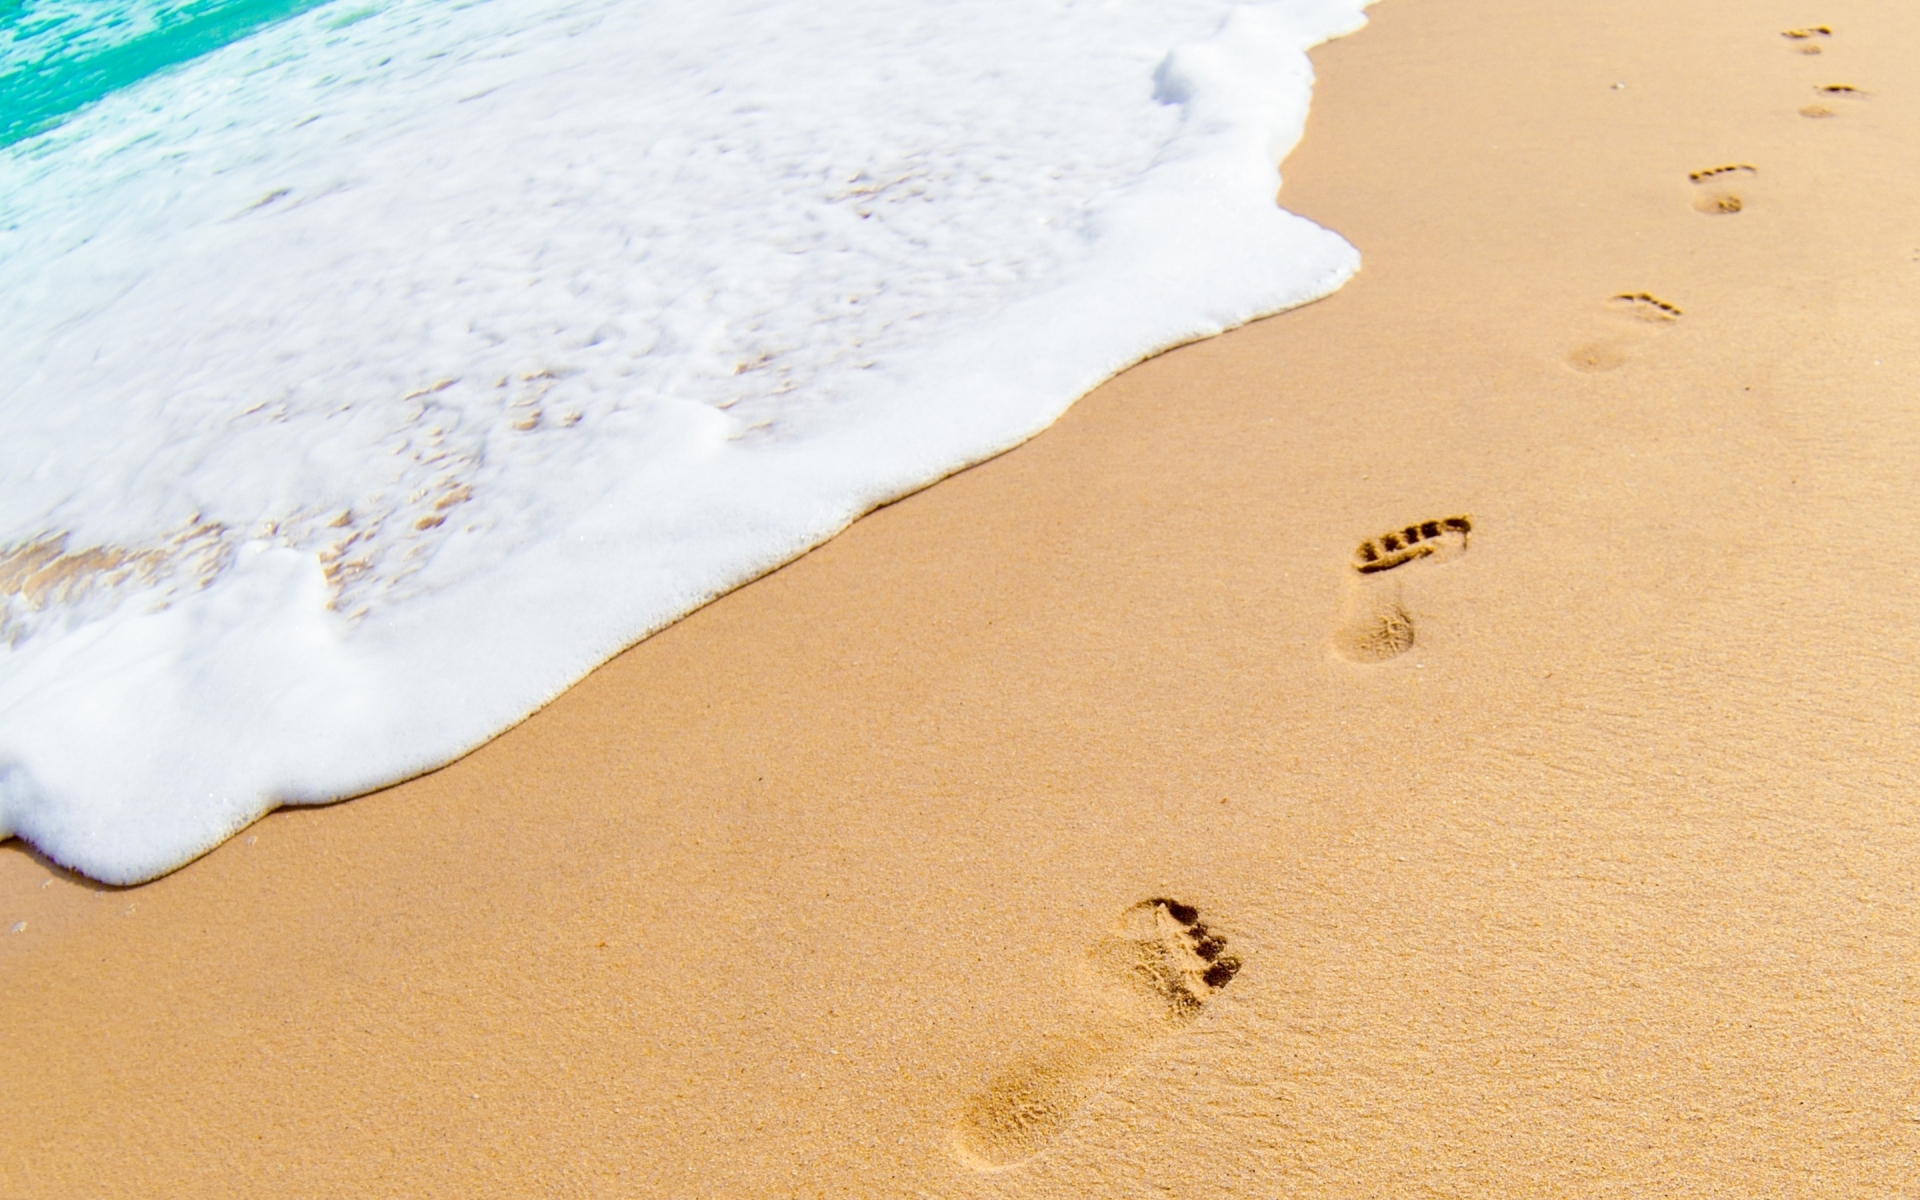 Wallpaper Footprints in the Sand   HD Wallpaper Expert 1920x1200